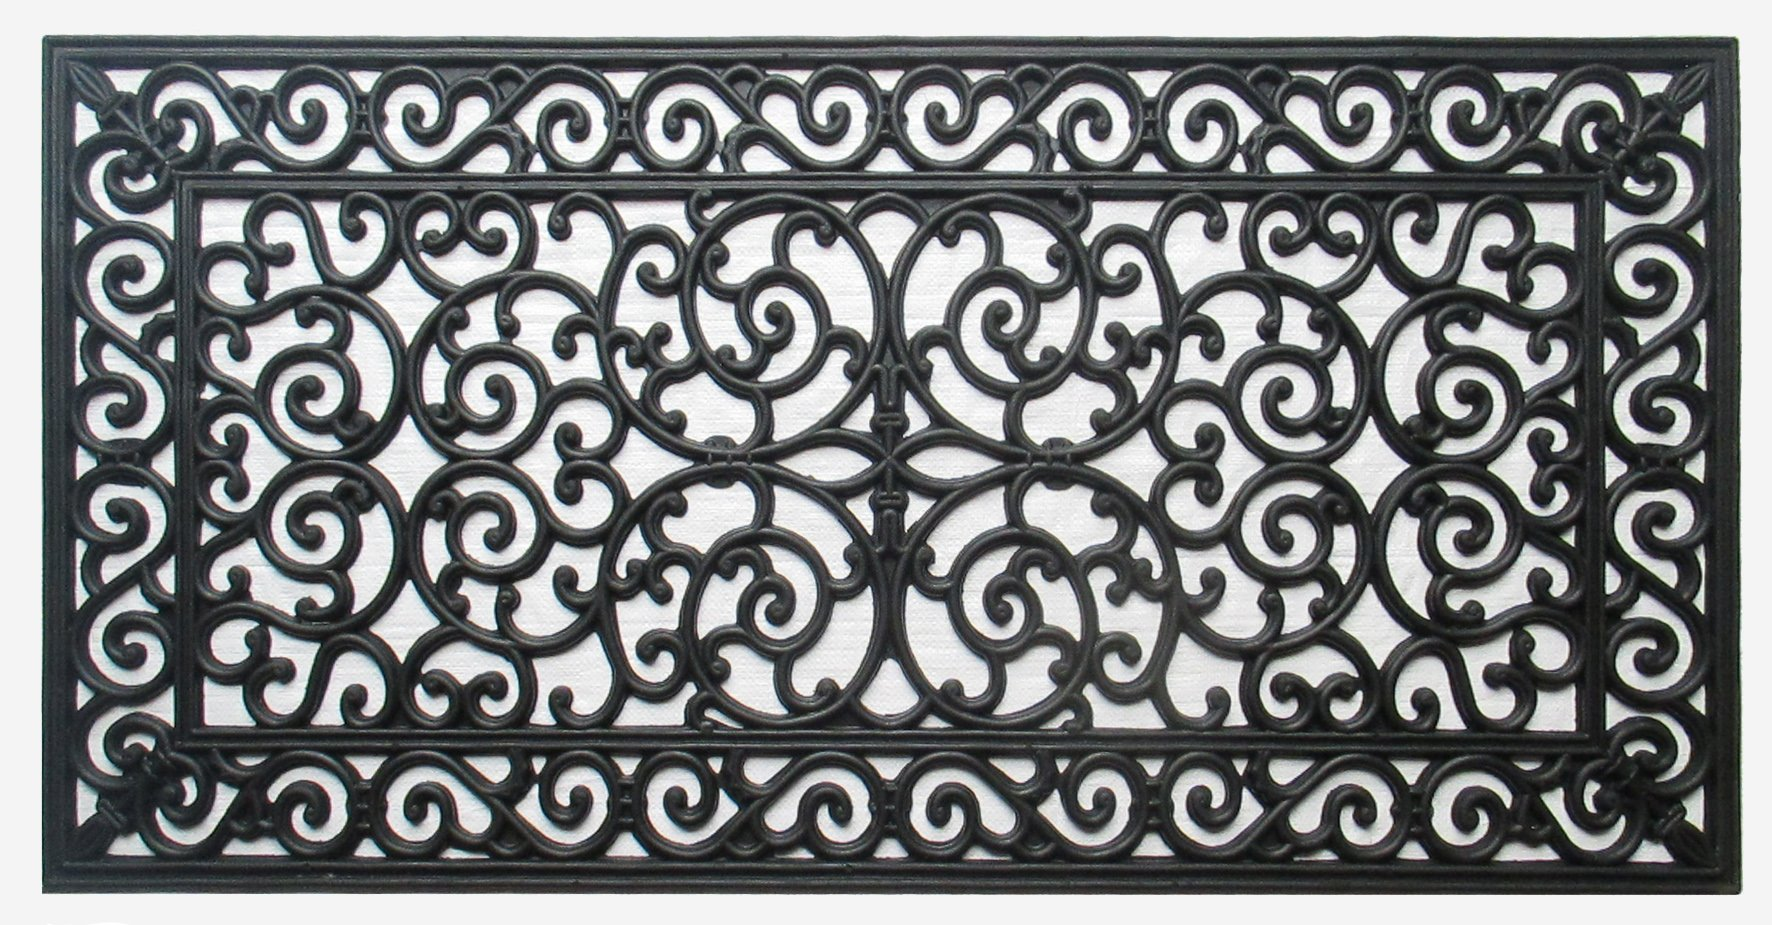 A1 Home Collections First IMPRESSION Audie Modern Indoor/Outdoor 23.62'' L x 47.25'' W Easy Clean Rubber Entry Way Doormat for Patio, Front Door, All Weather Exterior Doors/Large Size For Double Doors by A1 Home Collections